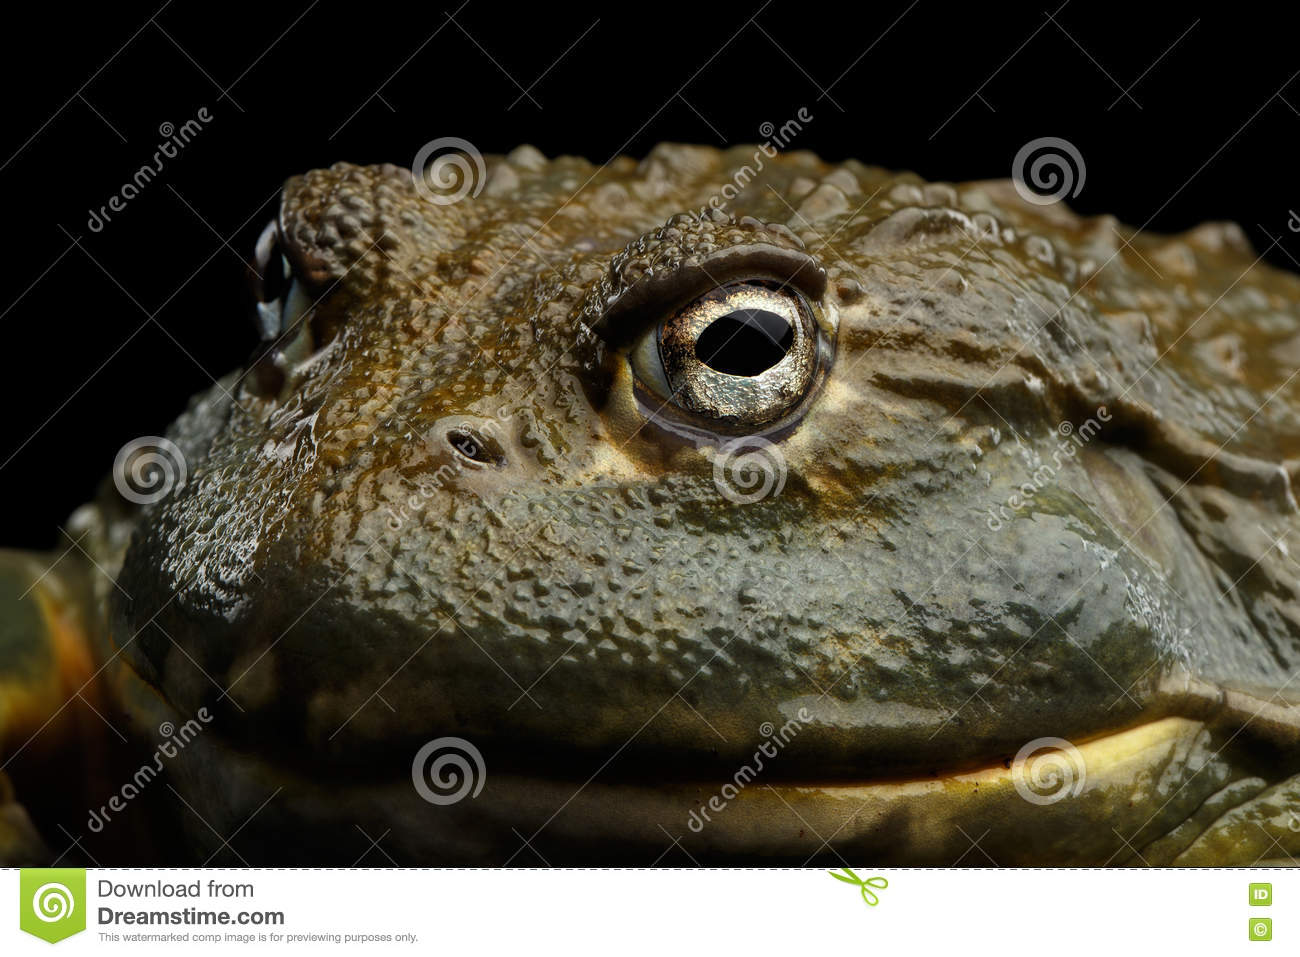 African bullfrog Pyxicephalus adspersus Frog isolated on Black Background